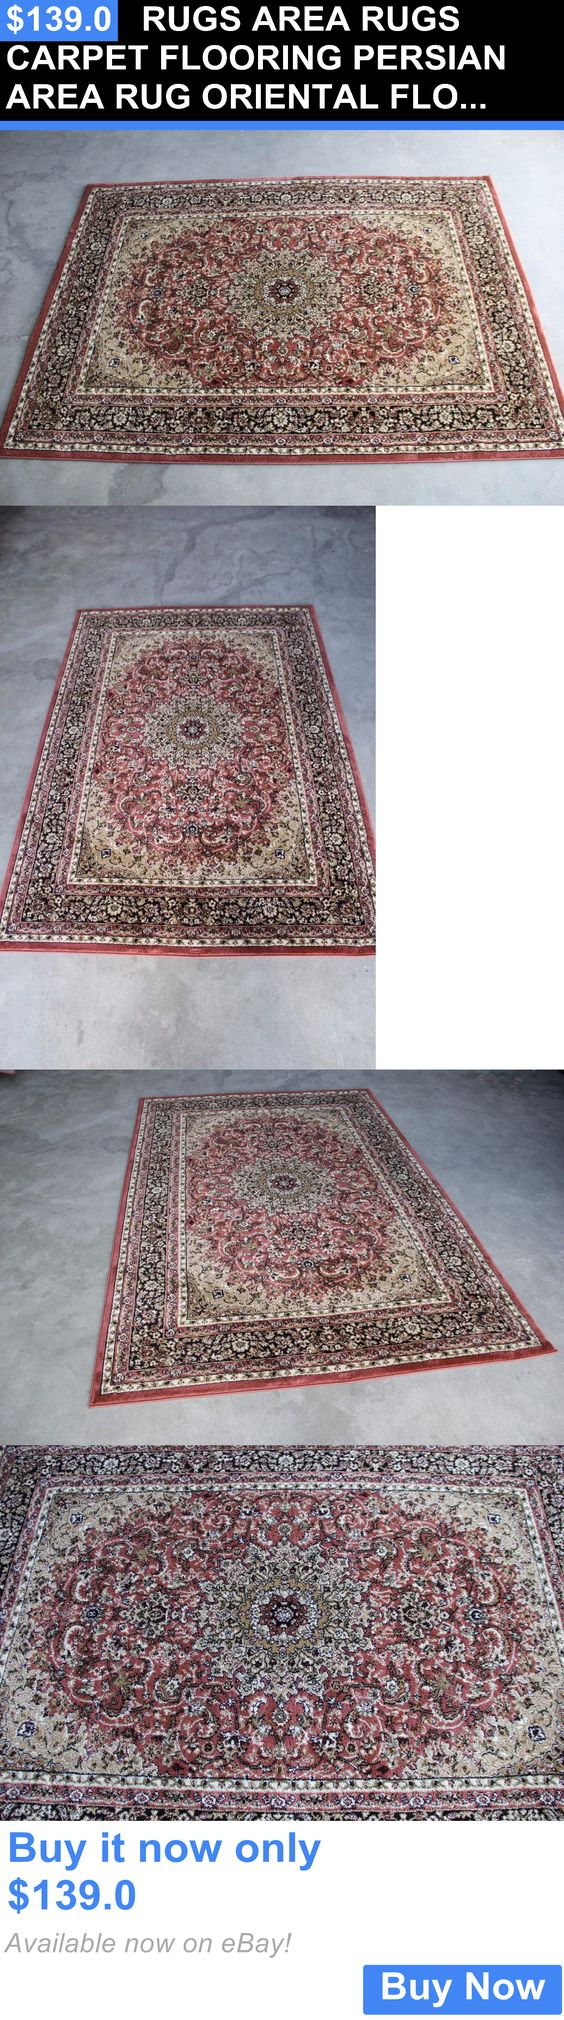 household items: Rugs Area Rugs Carpet Flooring Persian Area Rug Oriental Floor Decor Large Rugs~ BUY IT NOW ONLY: $139.0